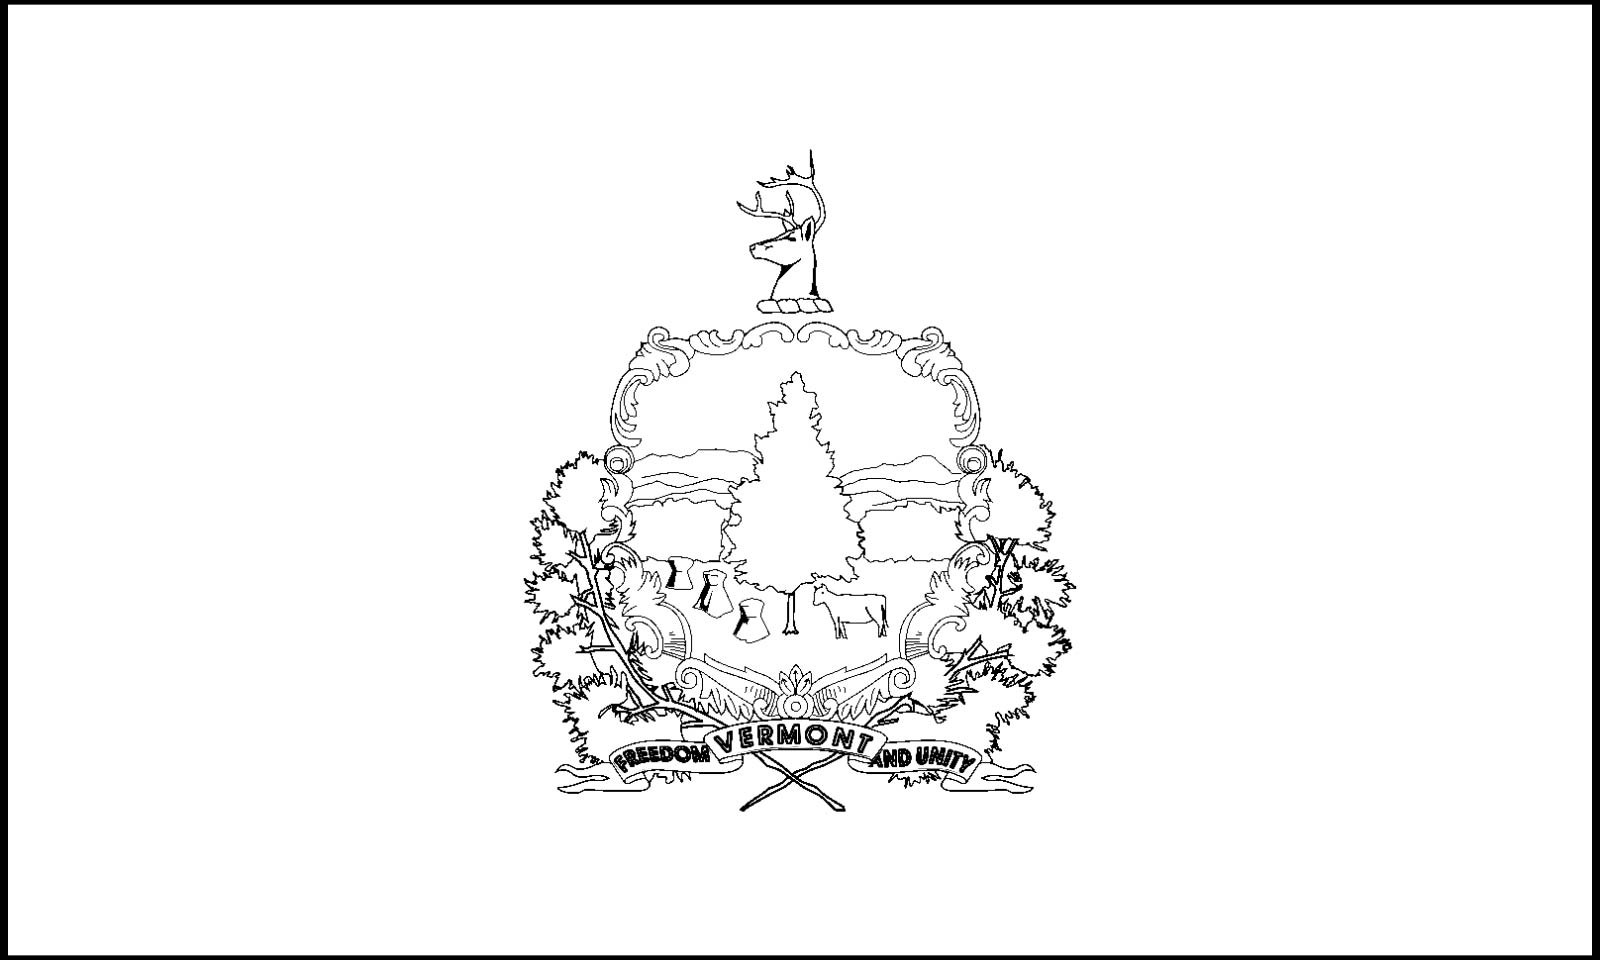 vermont state flag coloring page free printable vermont state flag color book pages 8 x 11 state coloring vermont flag page